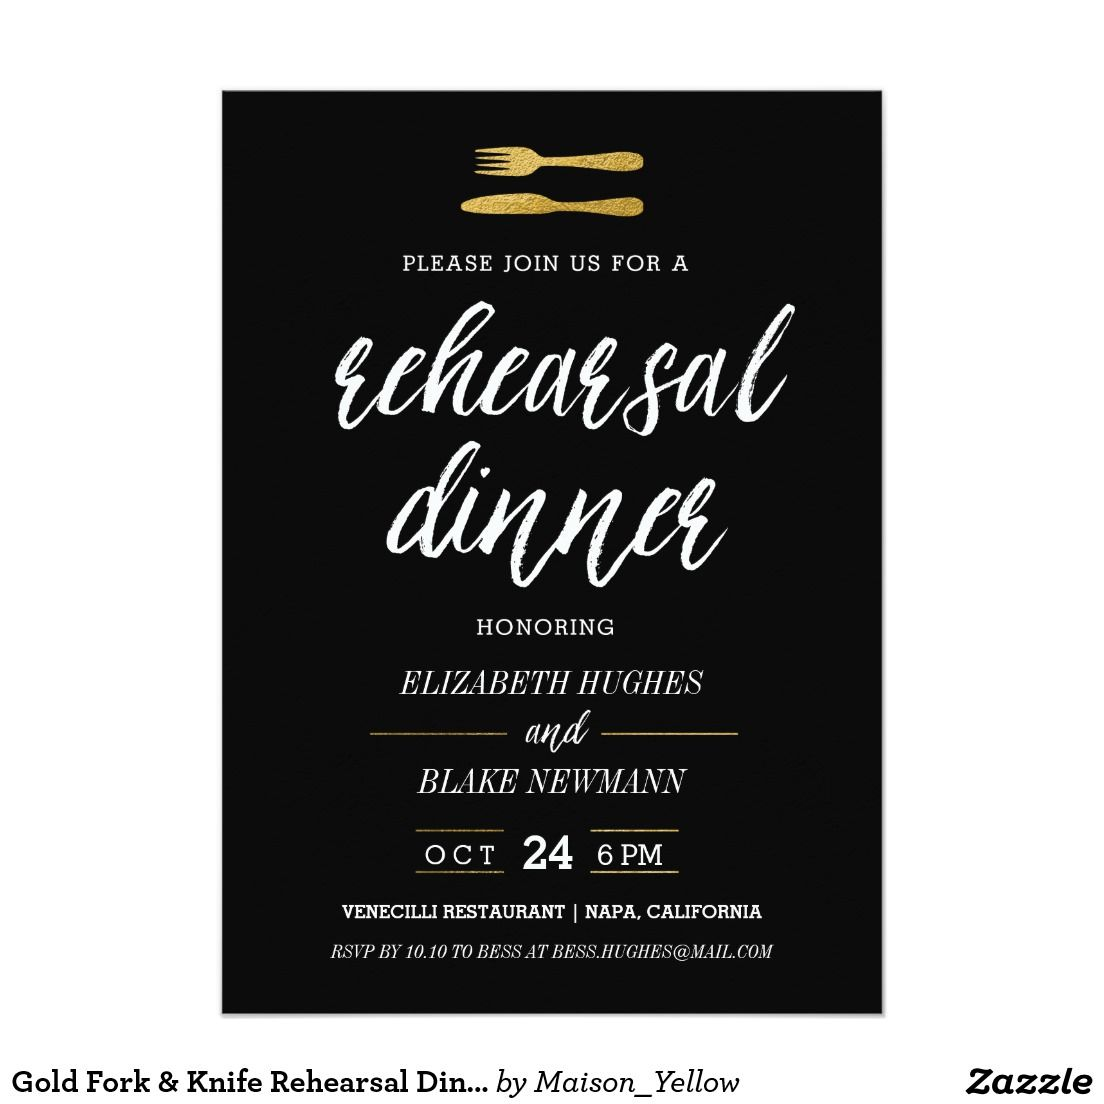 Gold Fork & Knife Rehearsal Dinner Invite - Black